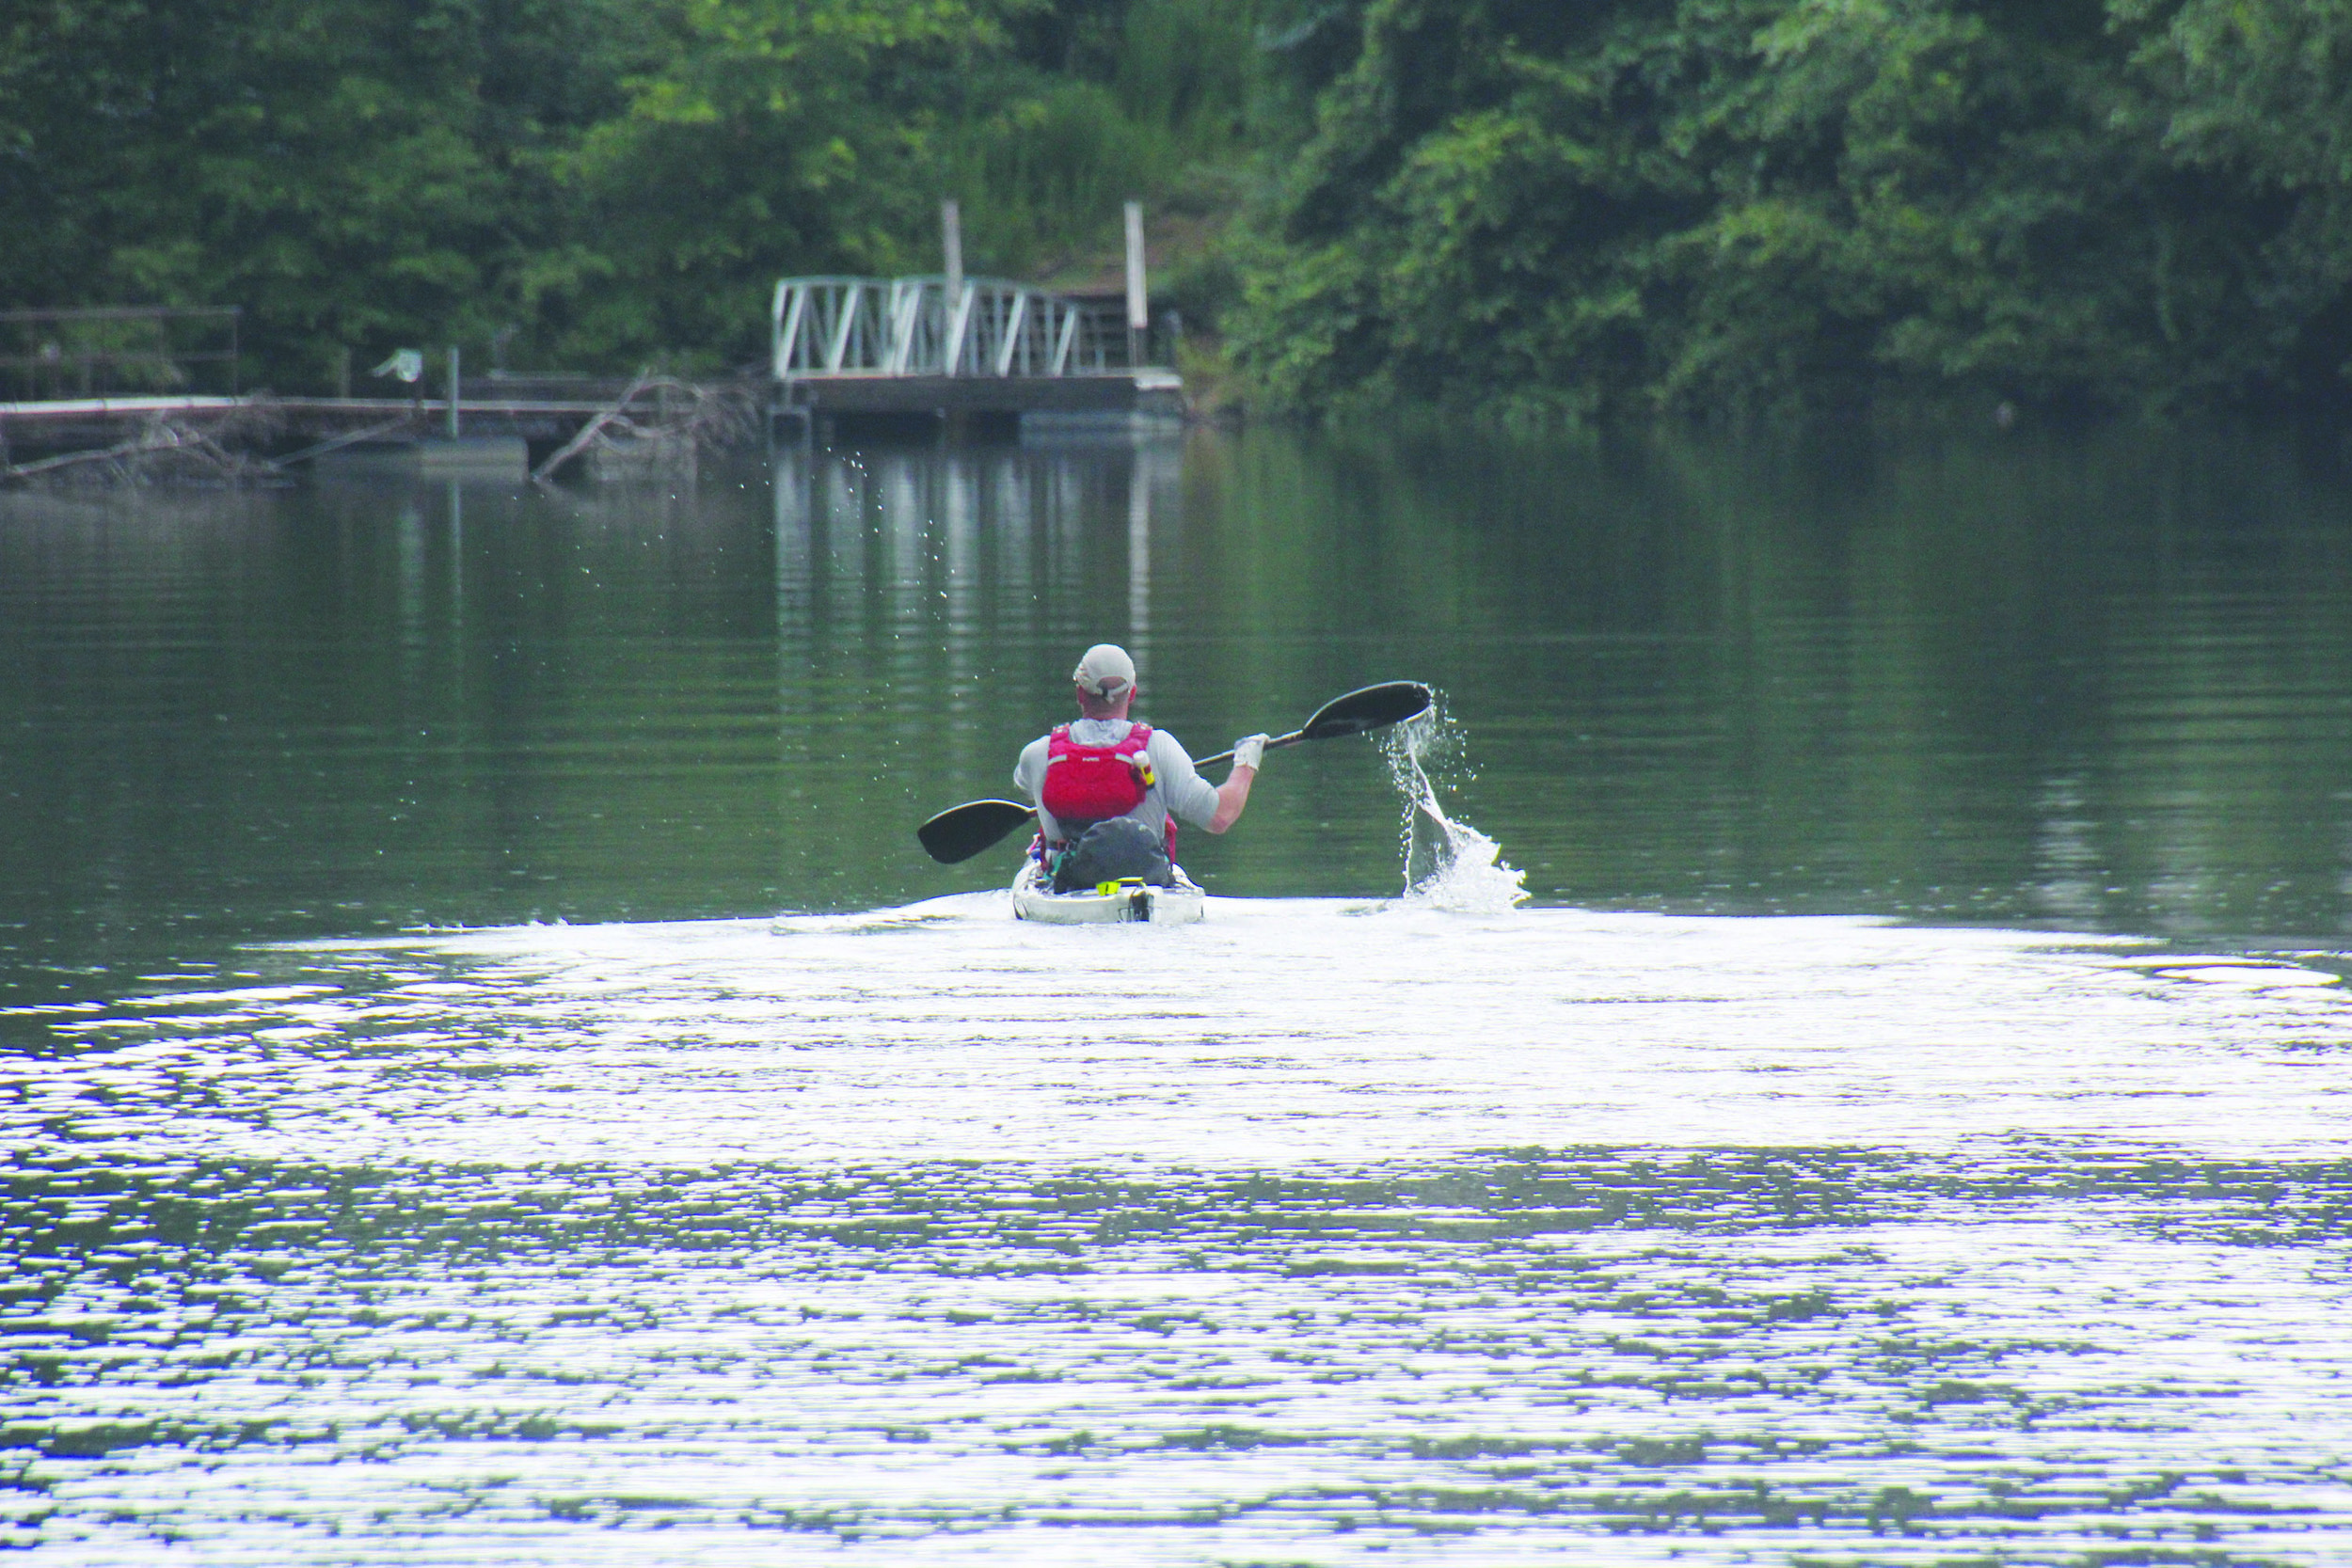 JOSHUA FORESTER COMPLETES LANIER LAP